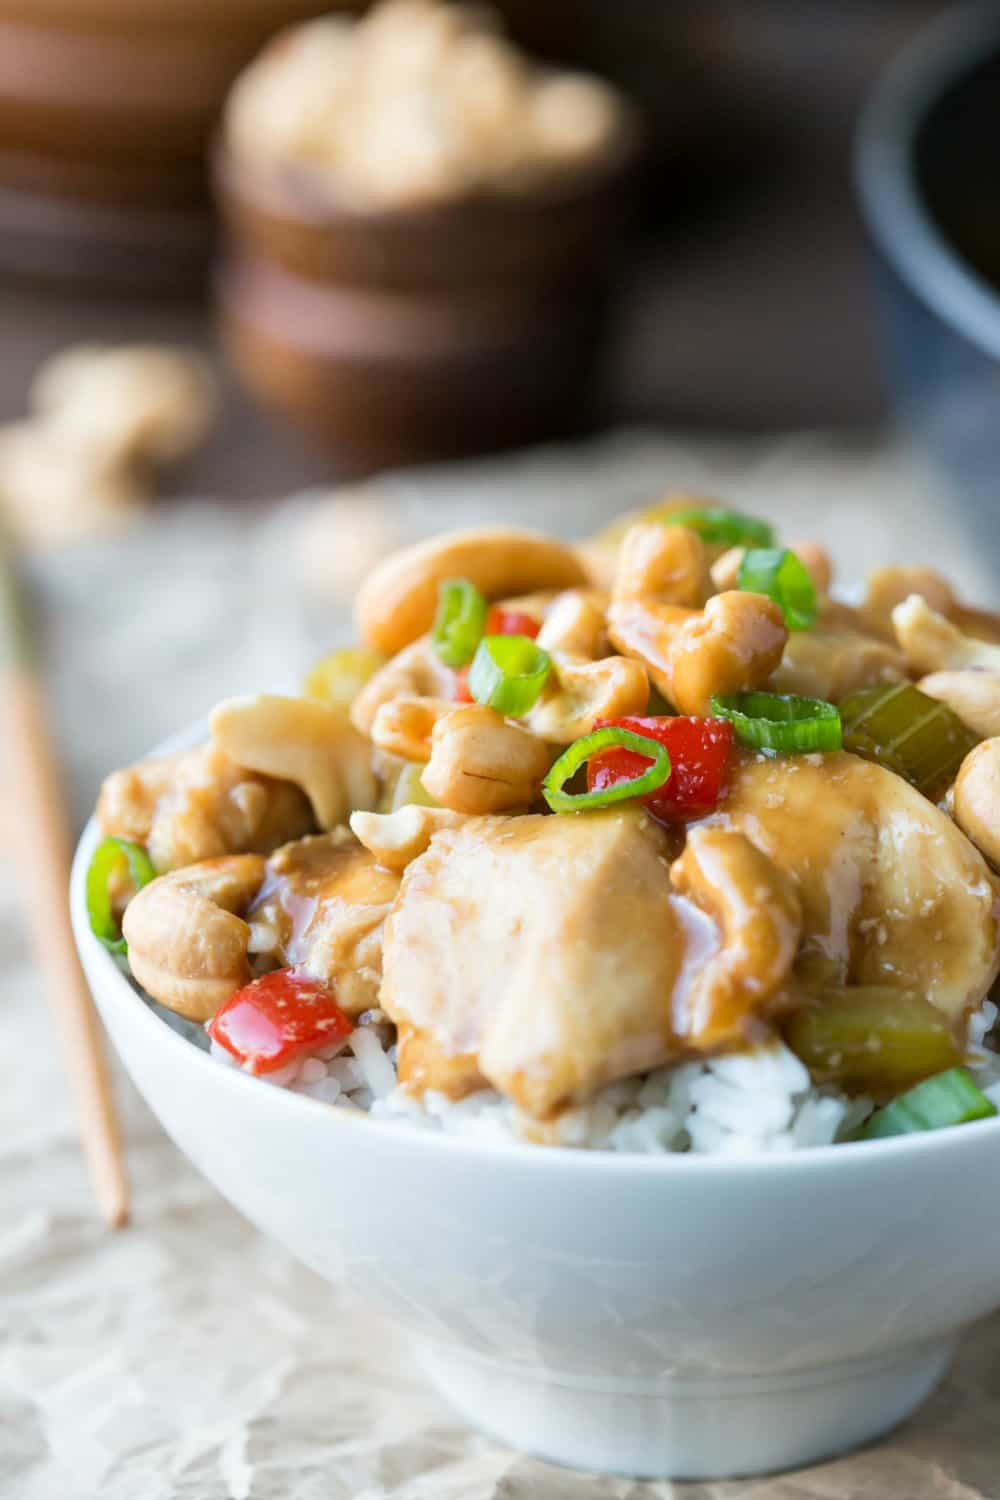 White bowl filled with rice and cashew chicken